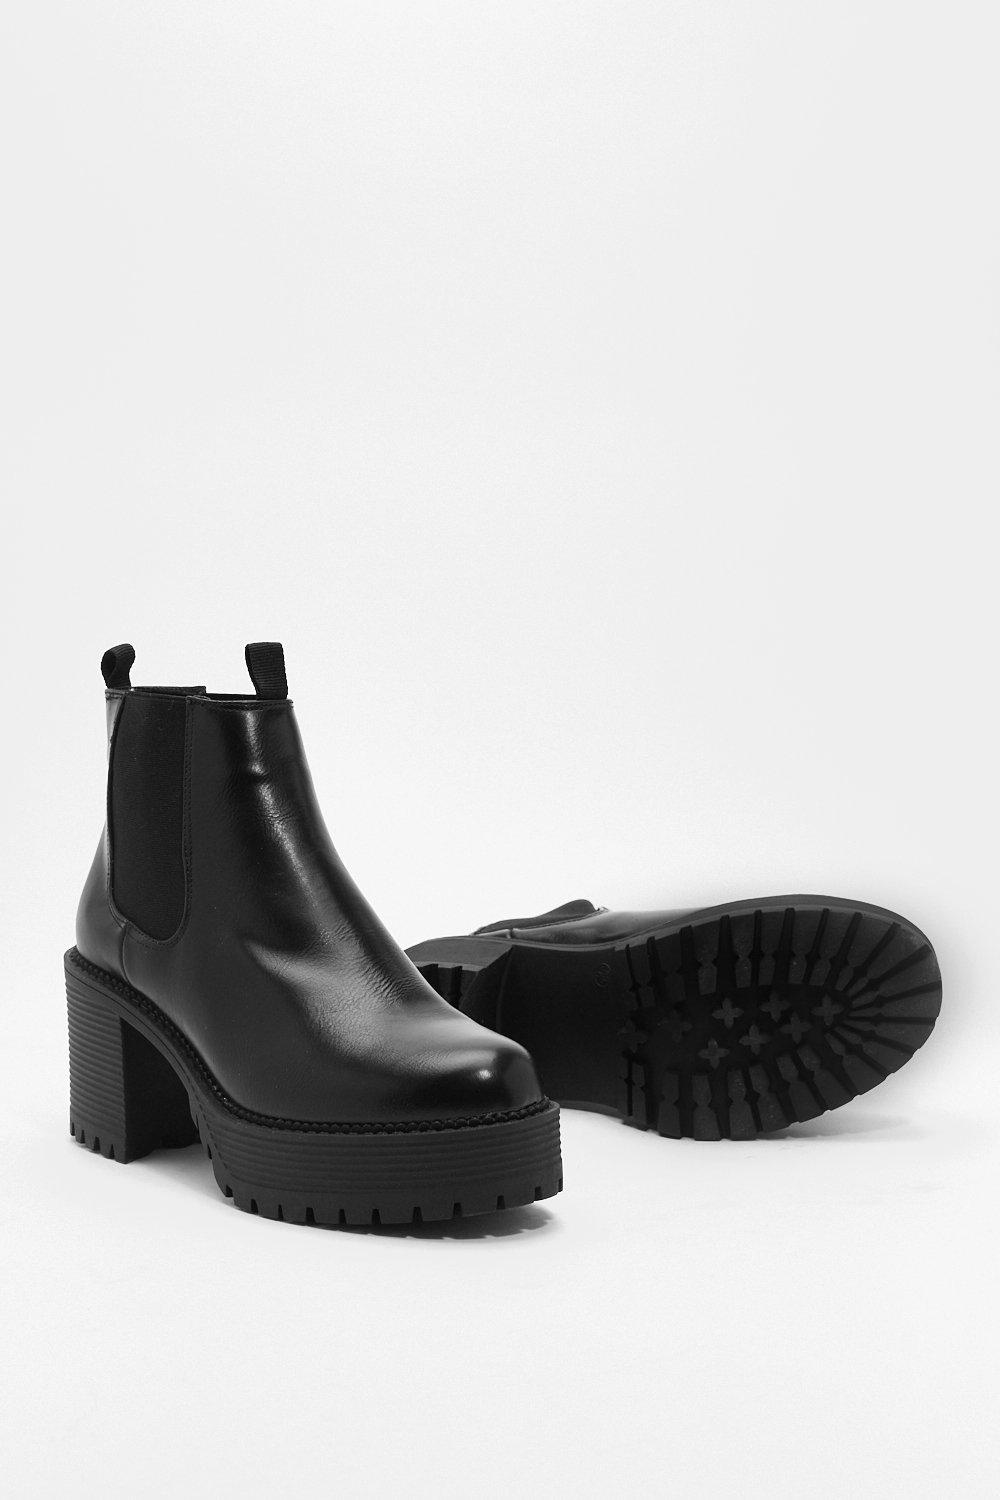 8250710196c Aim High Platform Chelsea Boots | Shop Clothes at Nasty Gal!